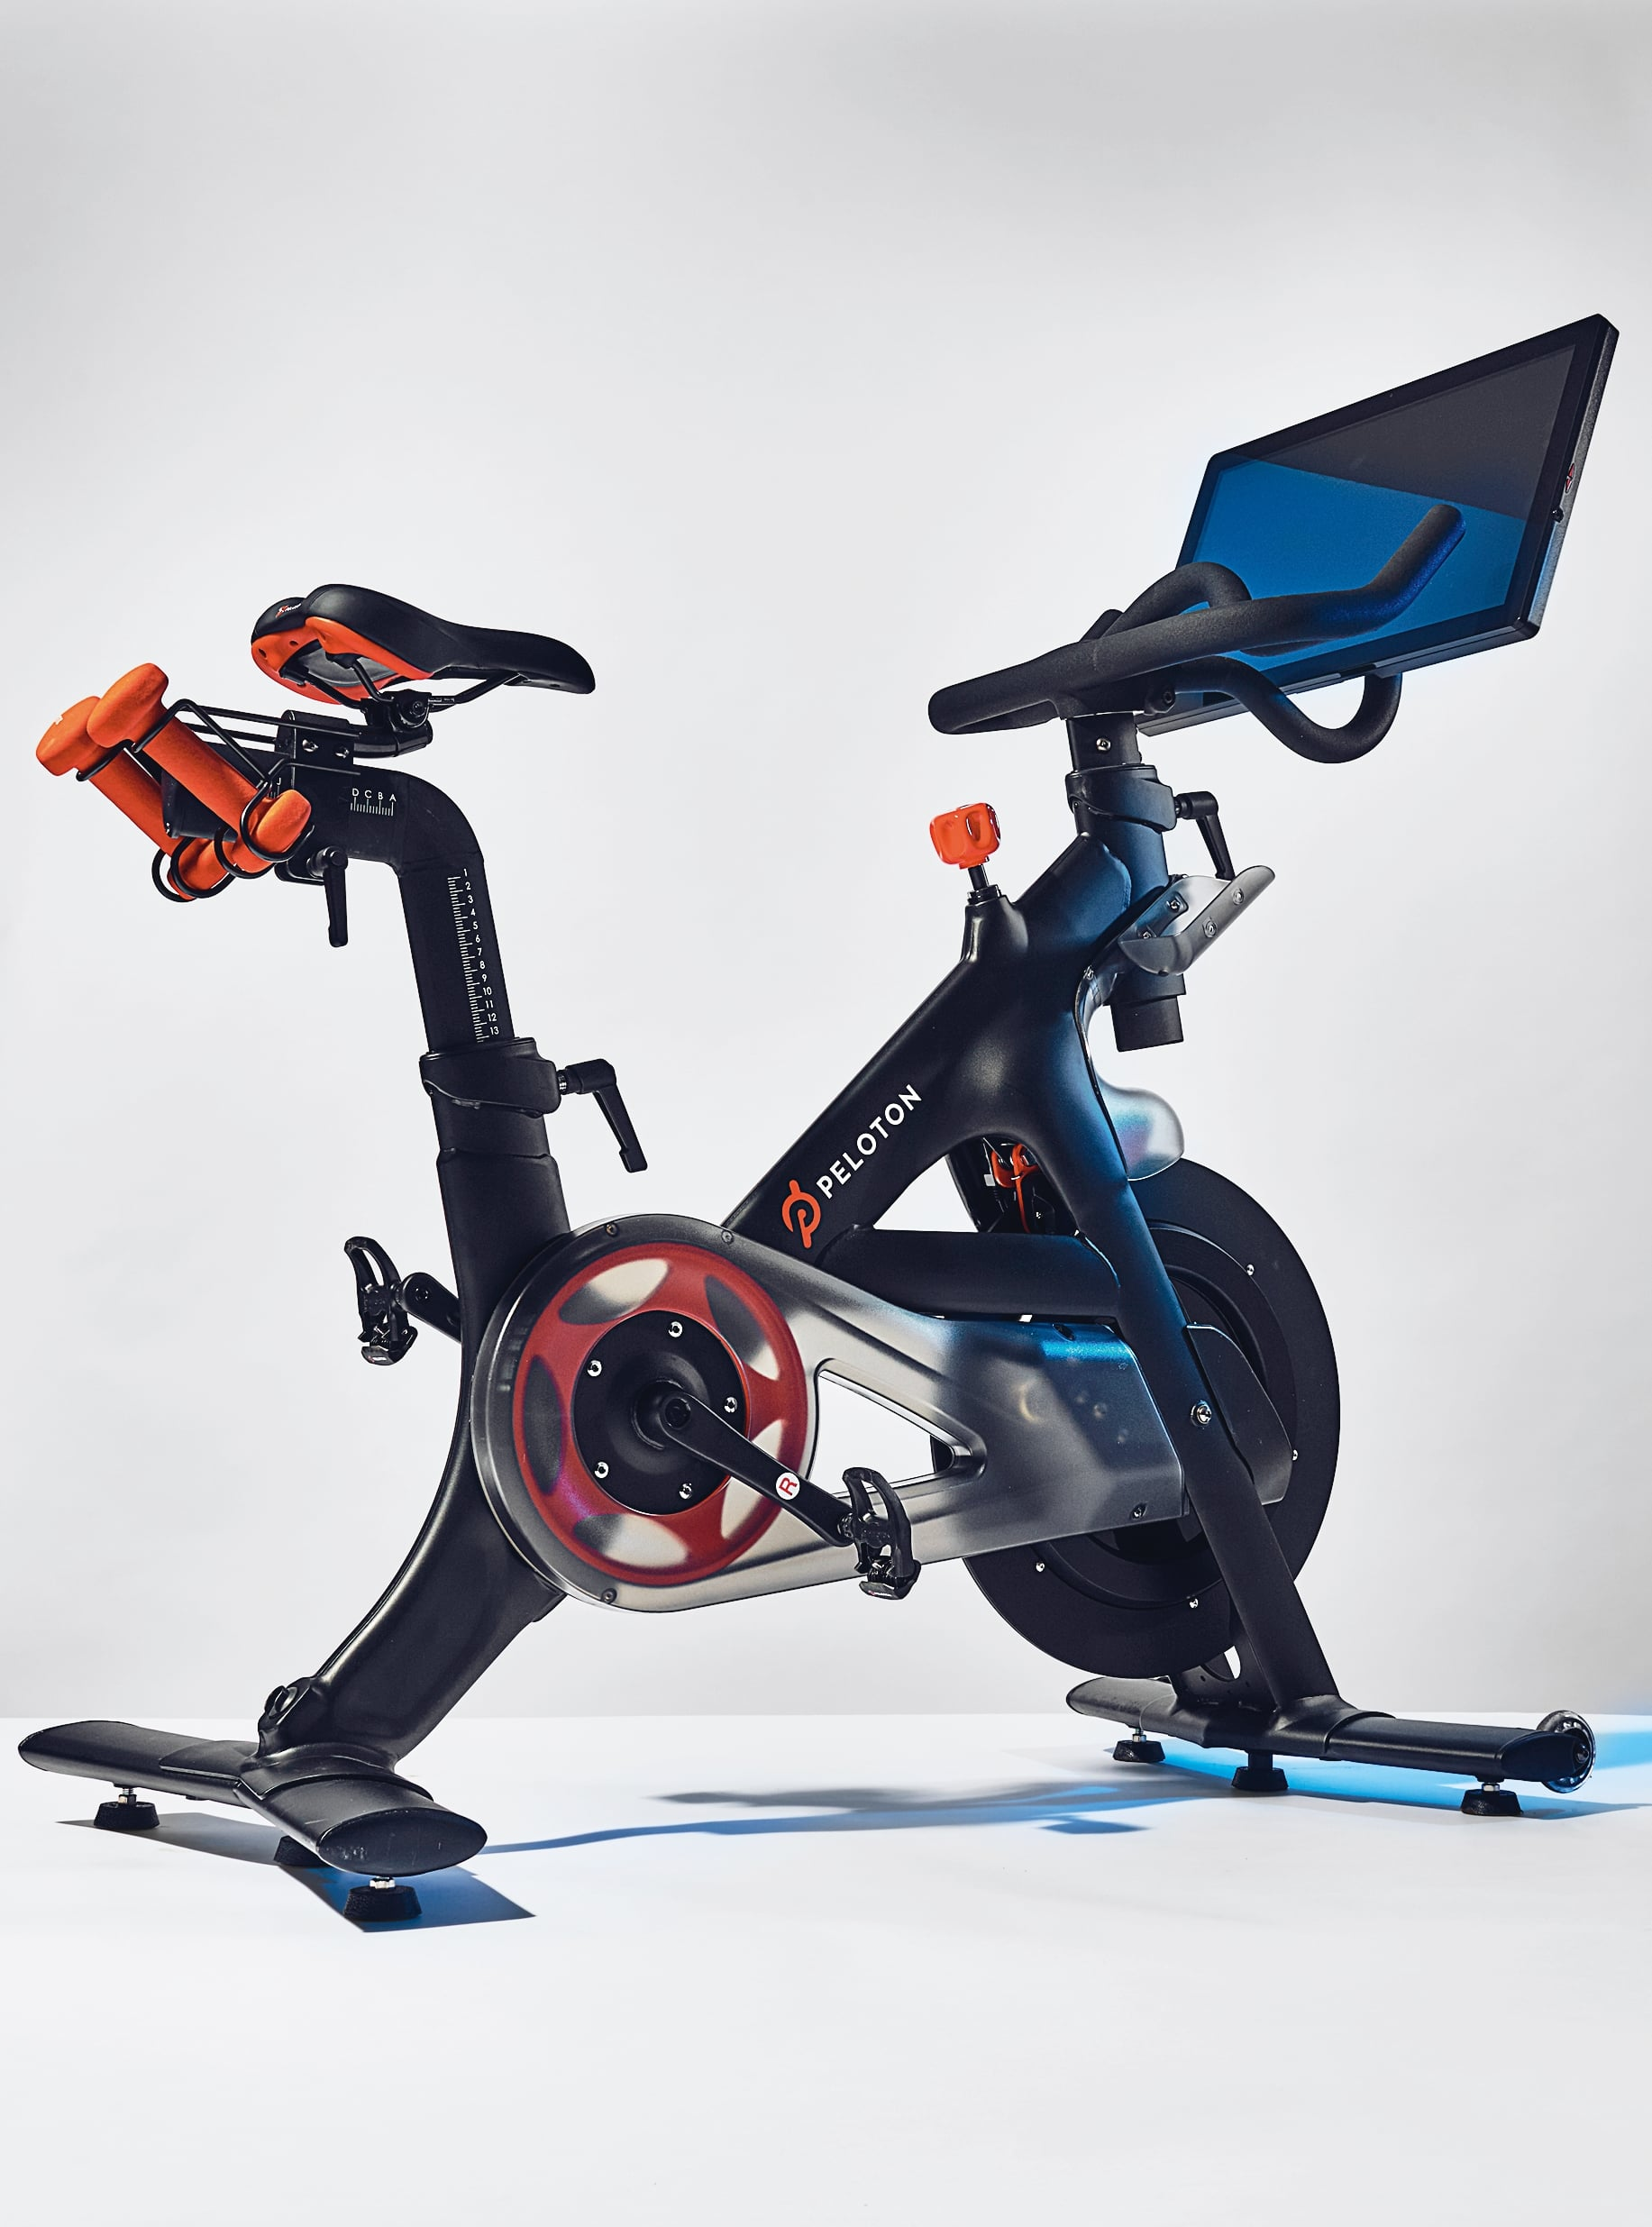 Peloton stationary exercise bicycle. (Photo by Adrian Gaut/Condé Nast via Getty Images)